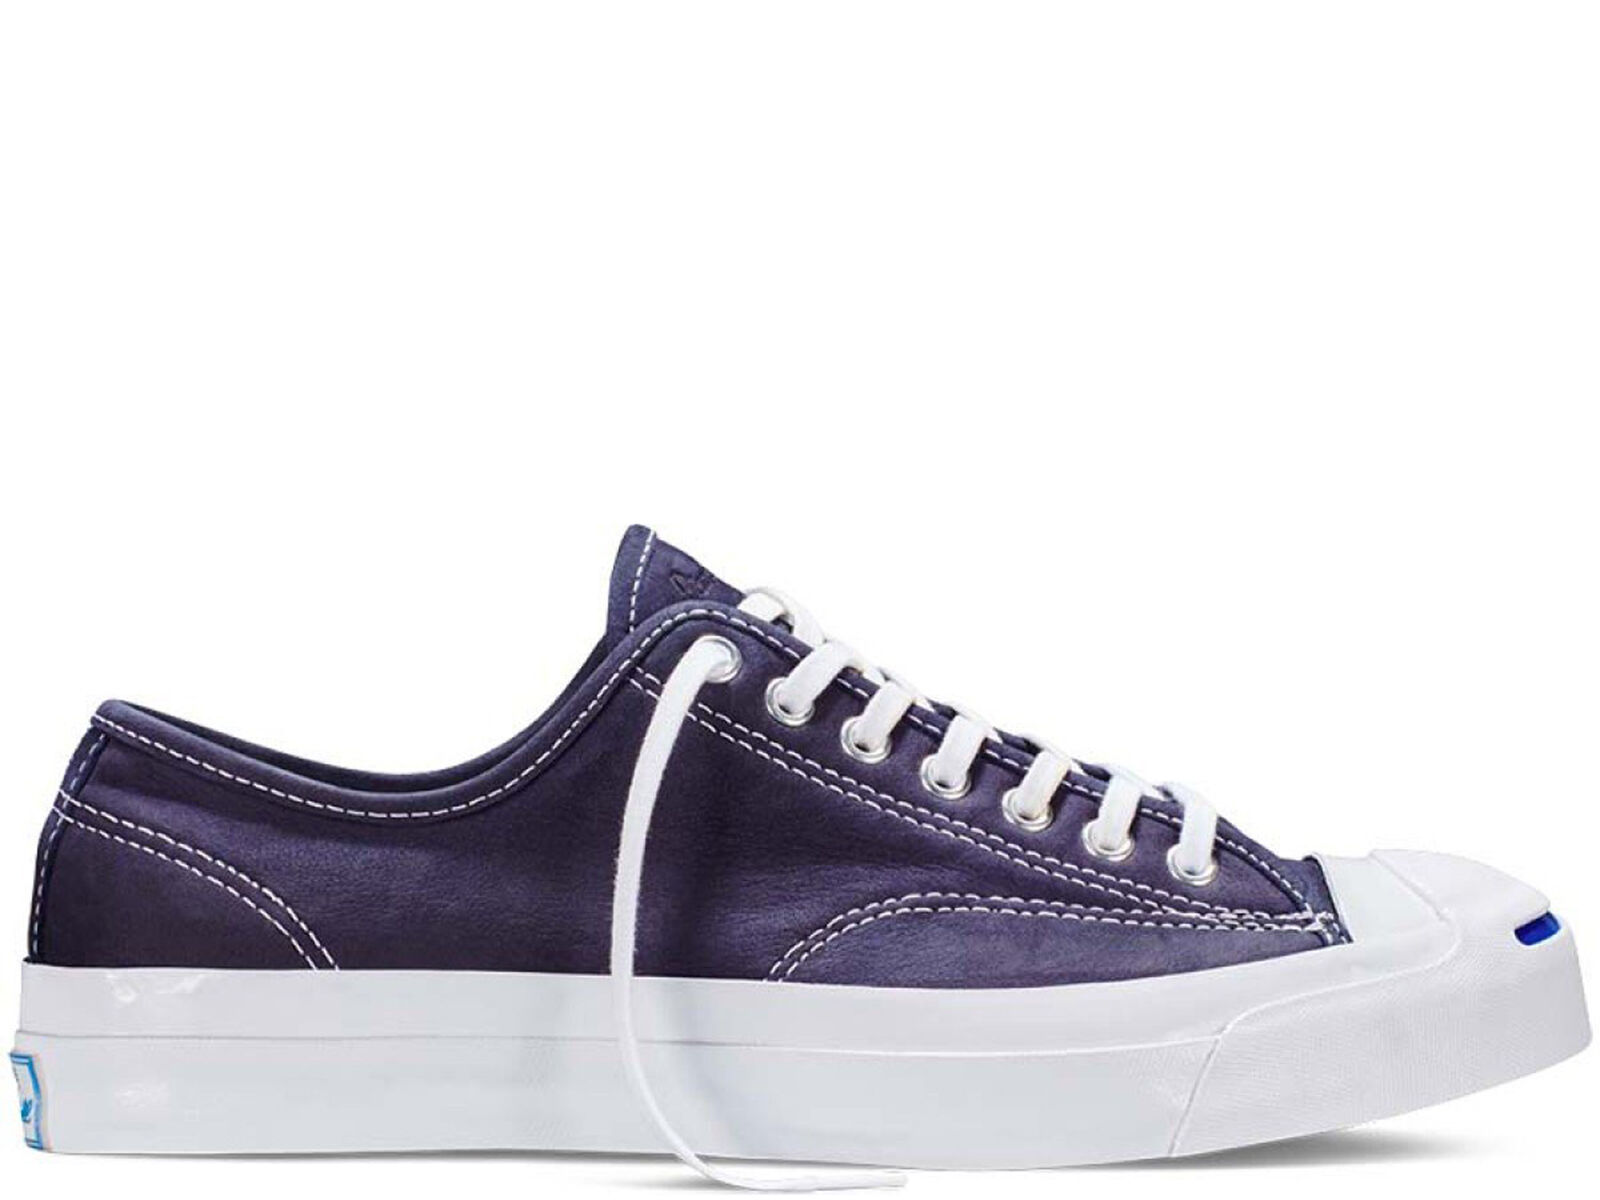 Men's Brand New Converse Jack Purcell Signature OX Fashion Sneakers [151449C]